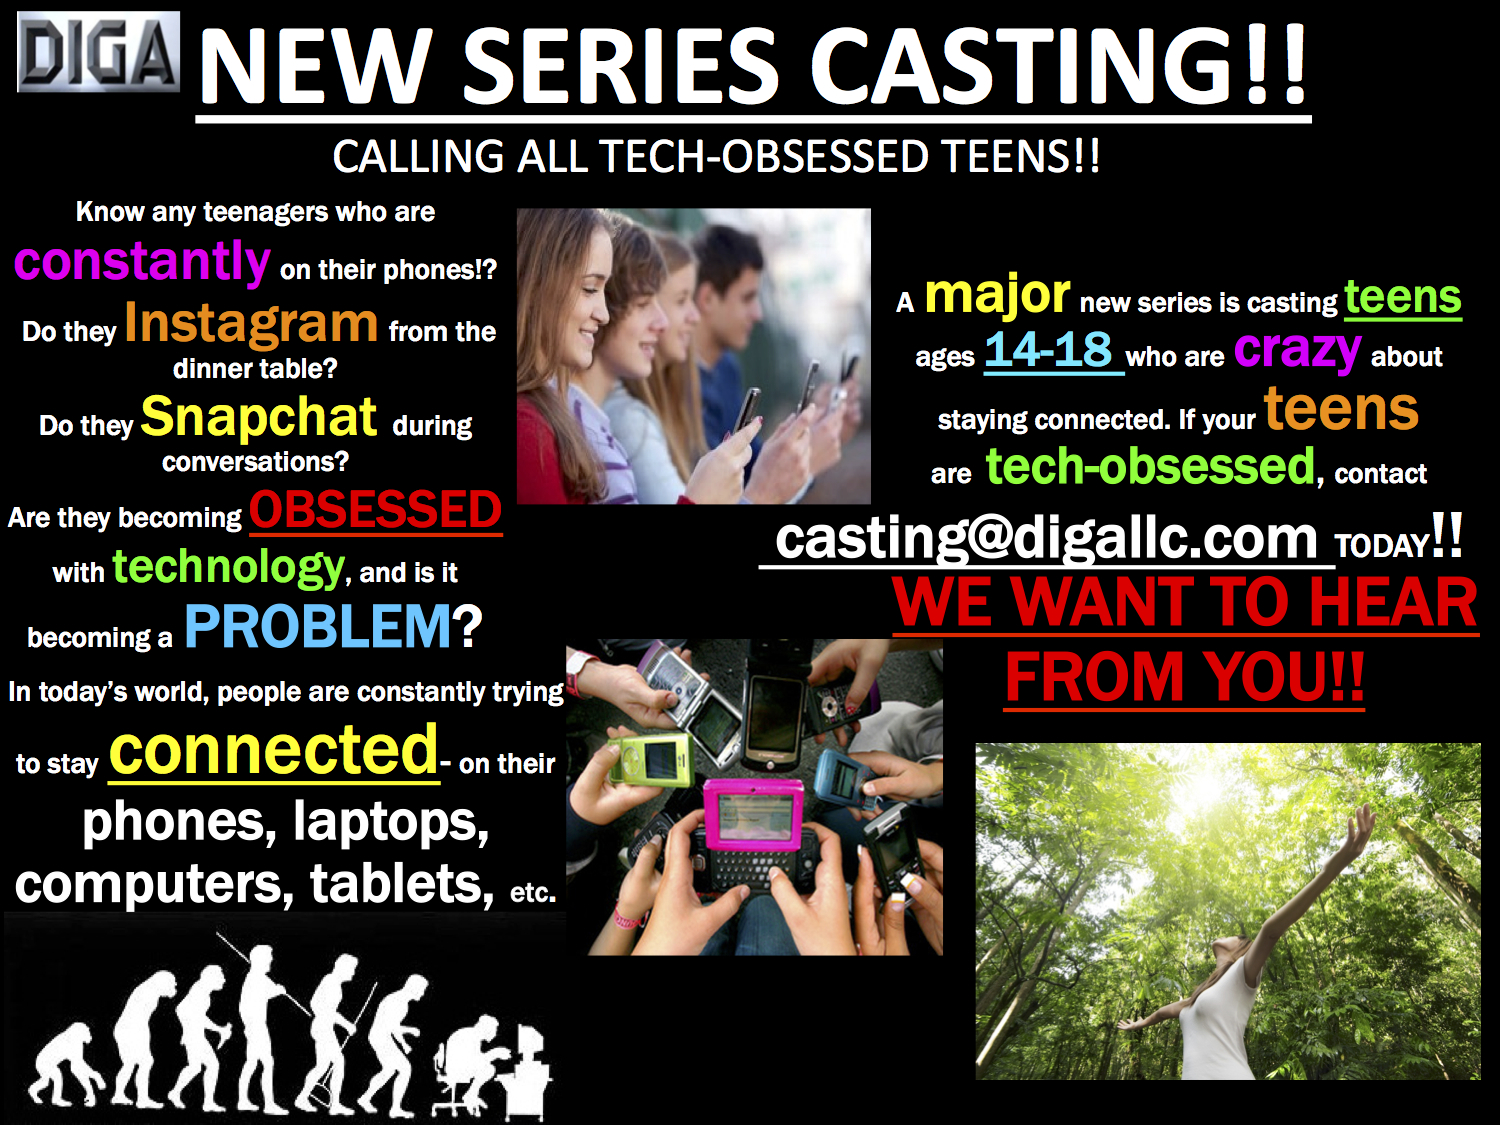 Casting Call for All Tech-Obessessed Teens